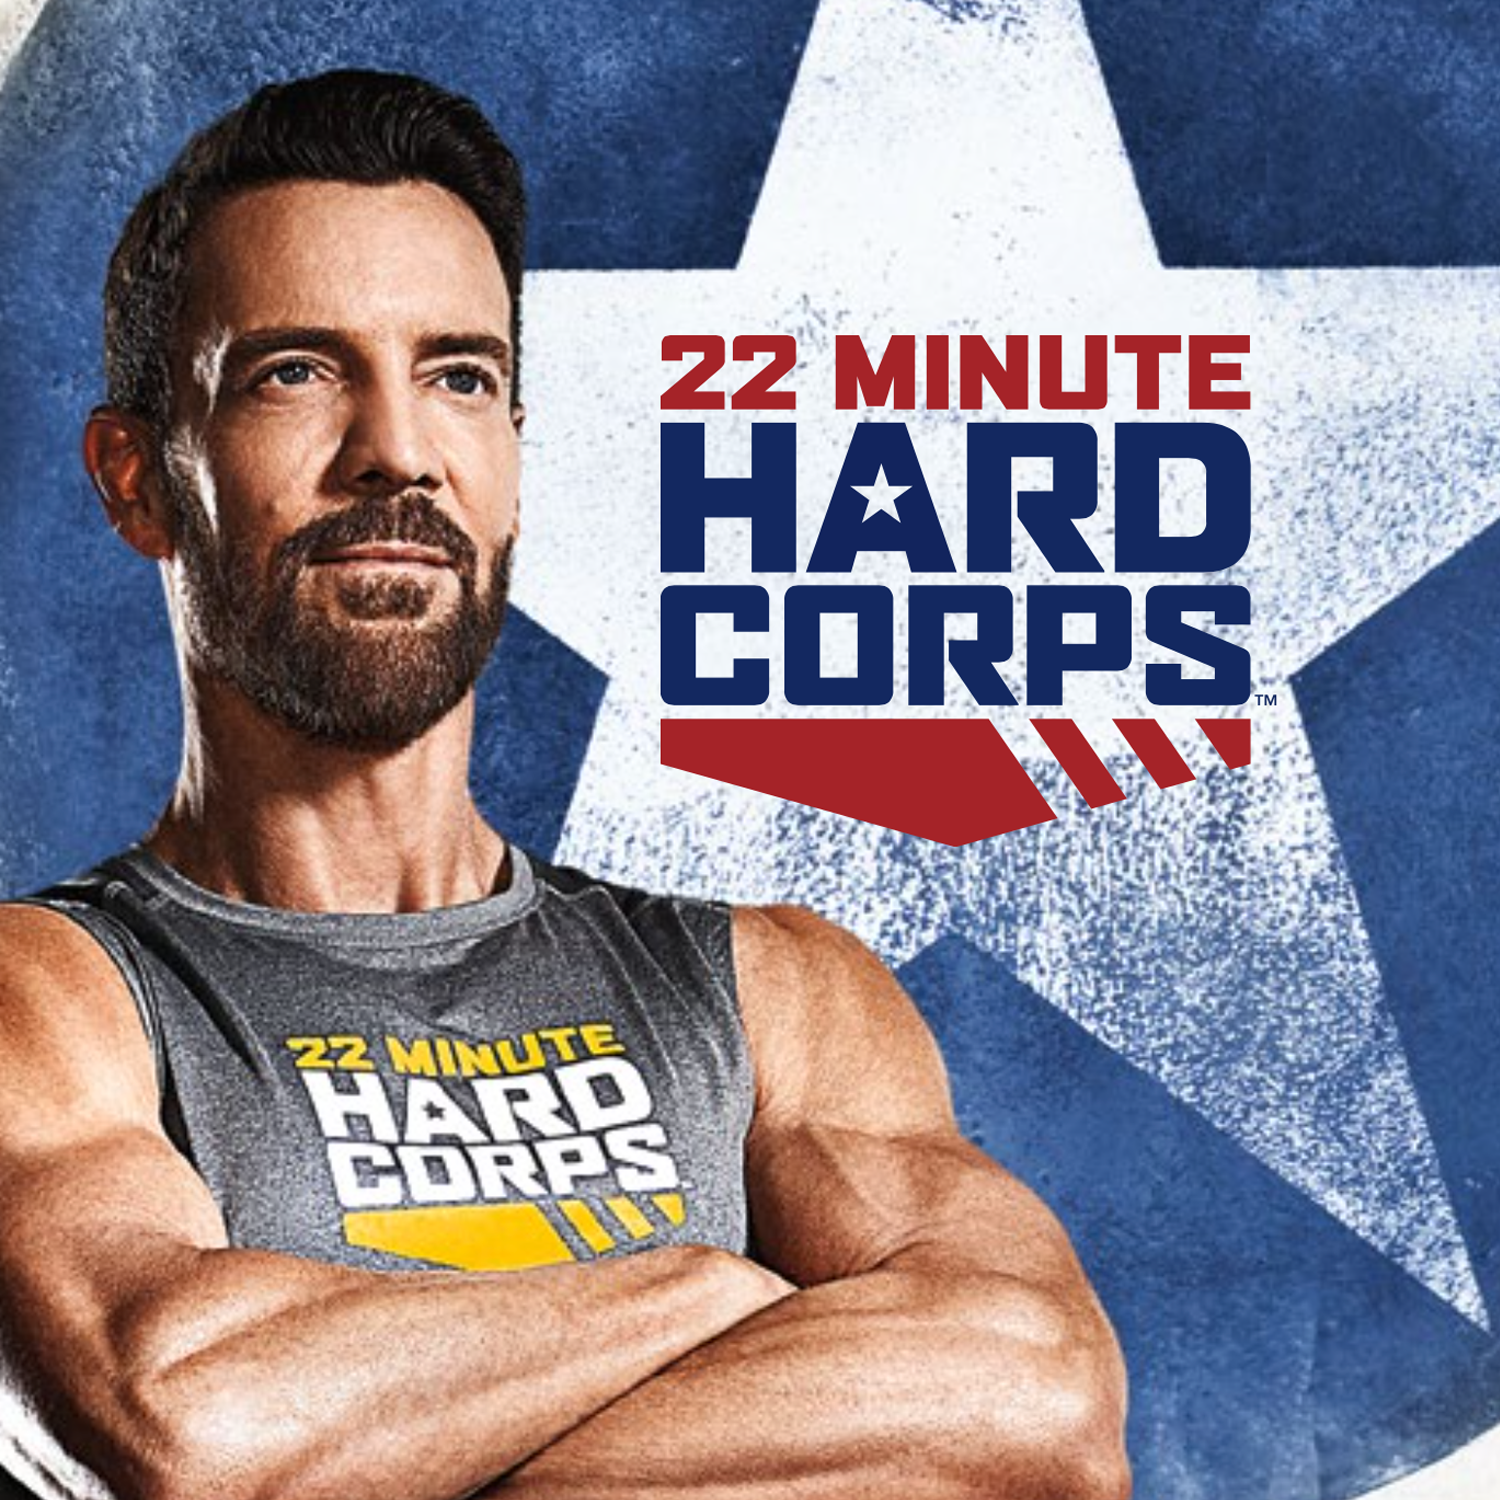 22 Minute Hard Corps.